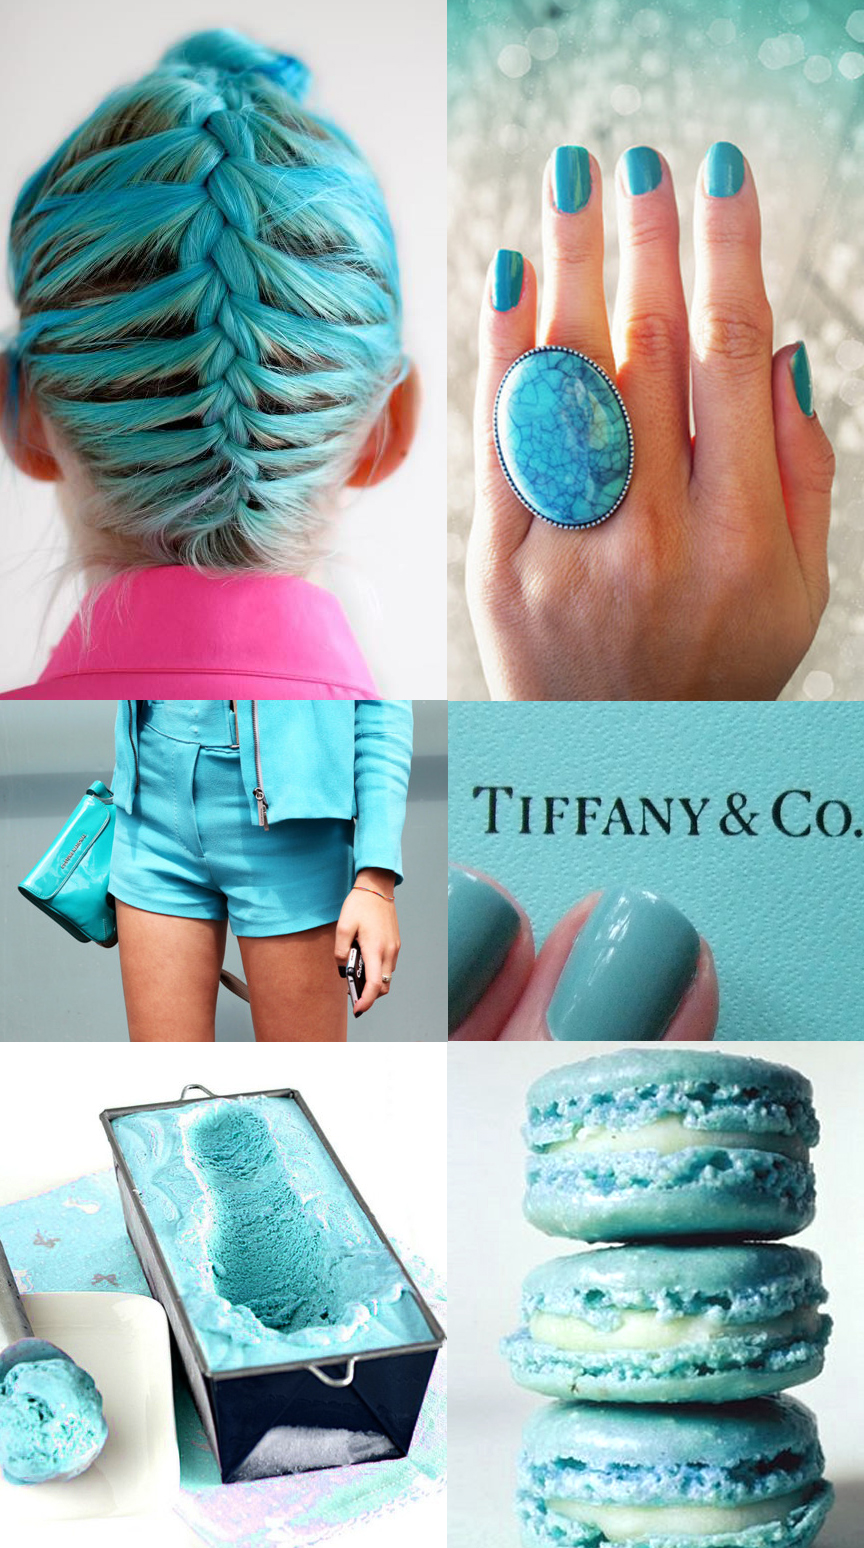 Captivating Exclusive Color Inspiration Tiffany May Colortrends Tiffany Blue Color Sample Tiffany Blue Color Code Pantone houzz-03 Tiffany Blue Color